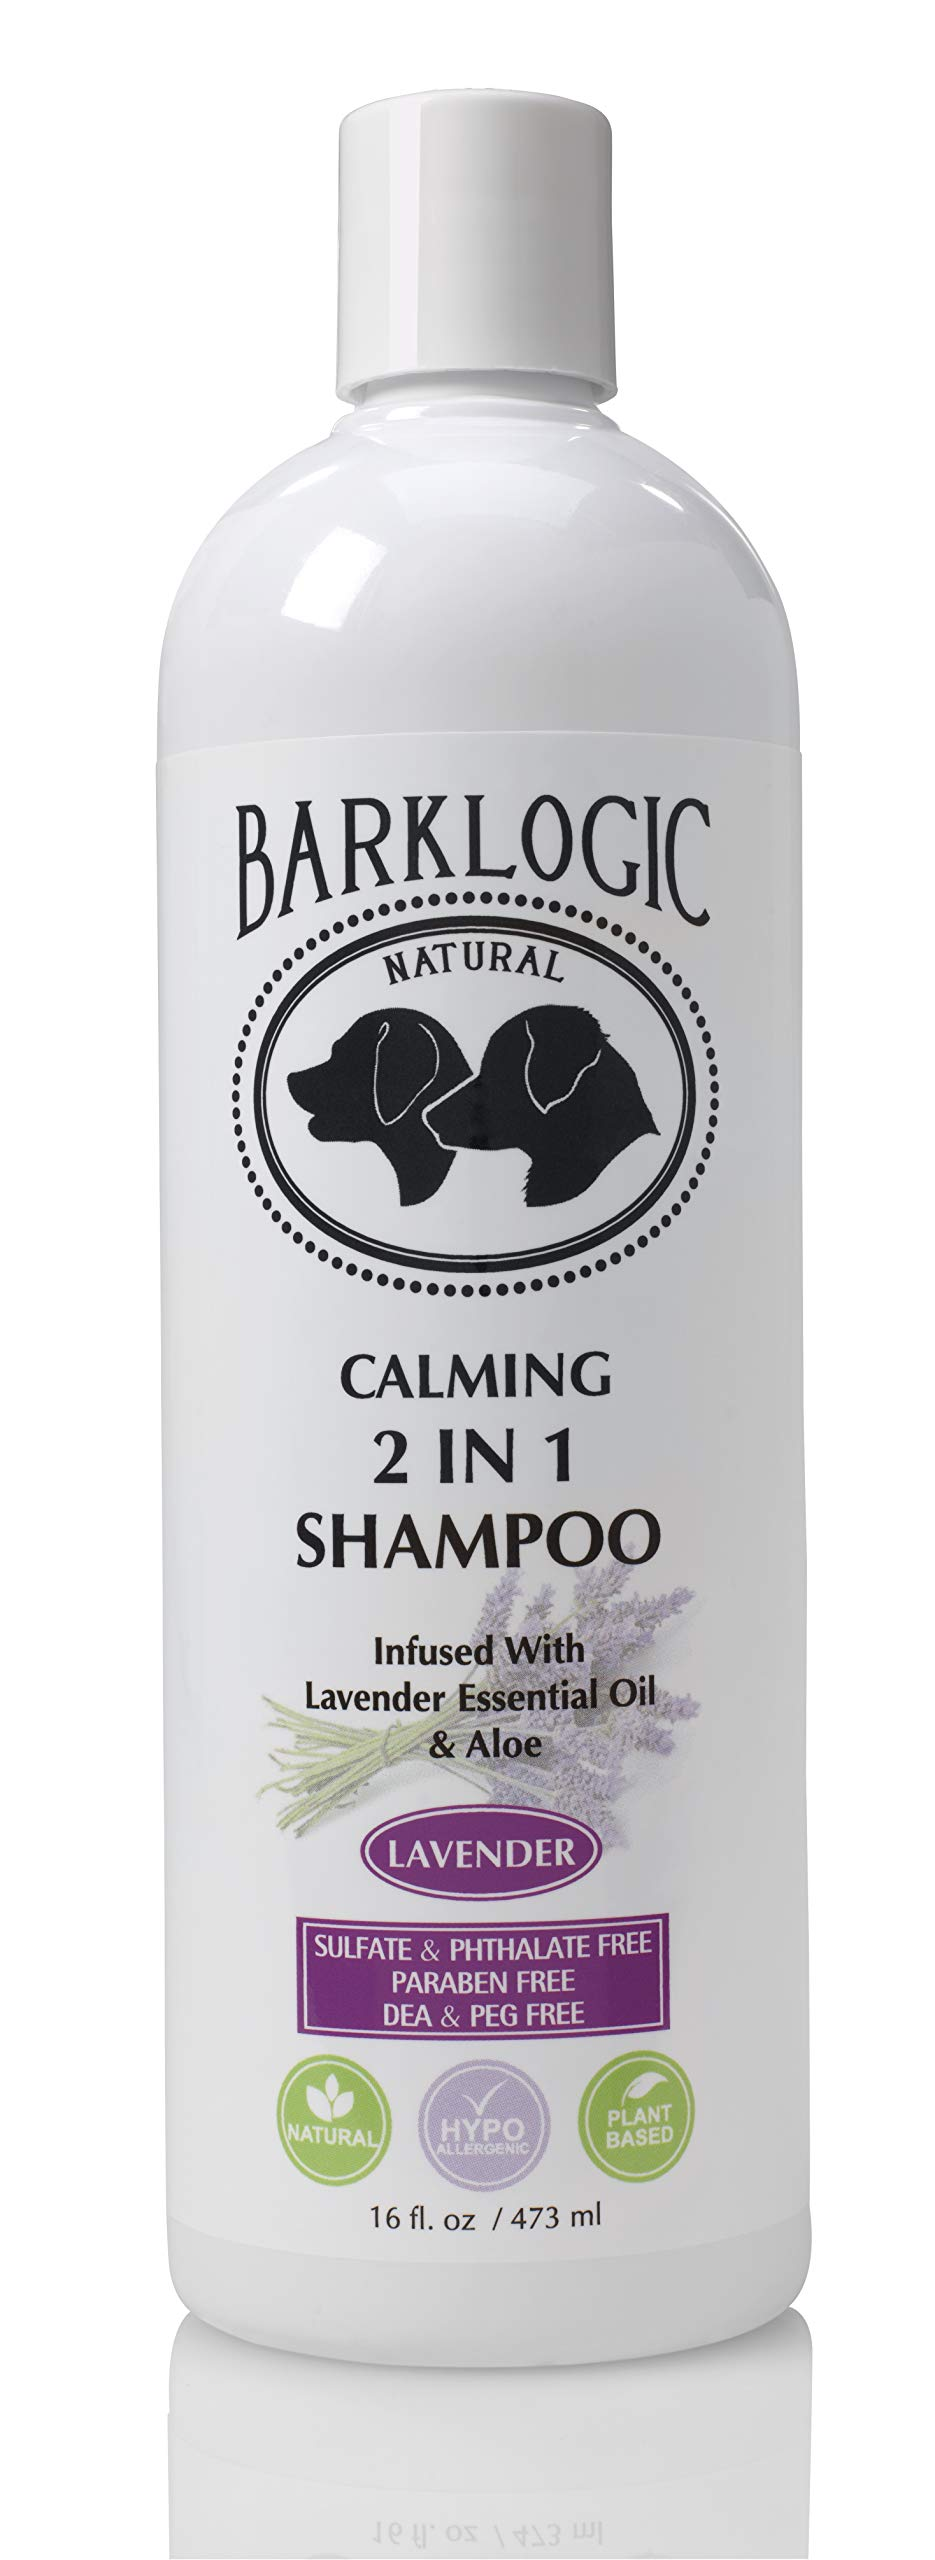 BarkLogic 2 in 1 Natural Dog Shampoo and Conditioner with Essential Oils, 16 oz, Hypoallergenic Plant Based Formula for Sensitive Skin